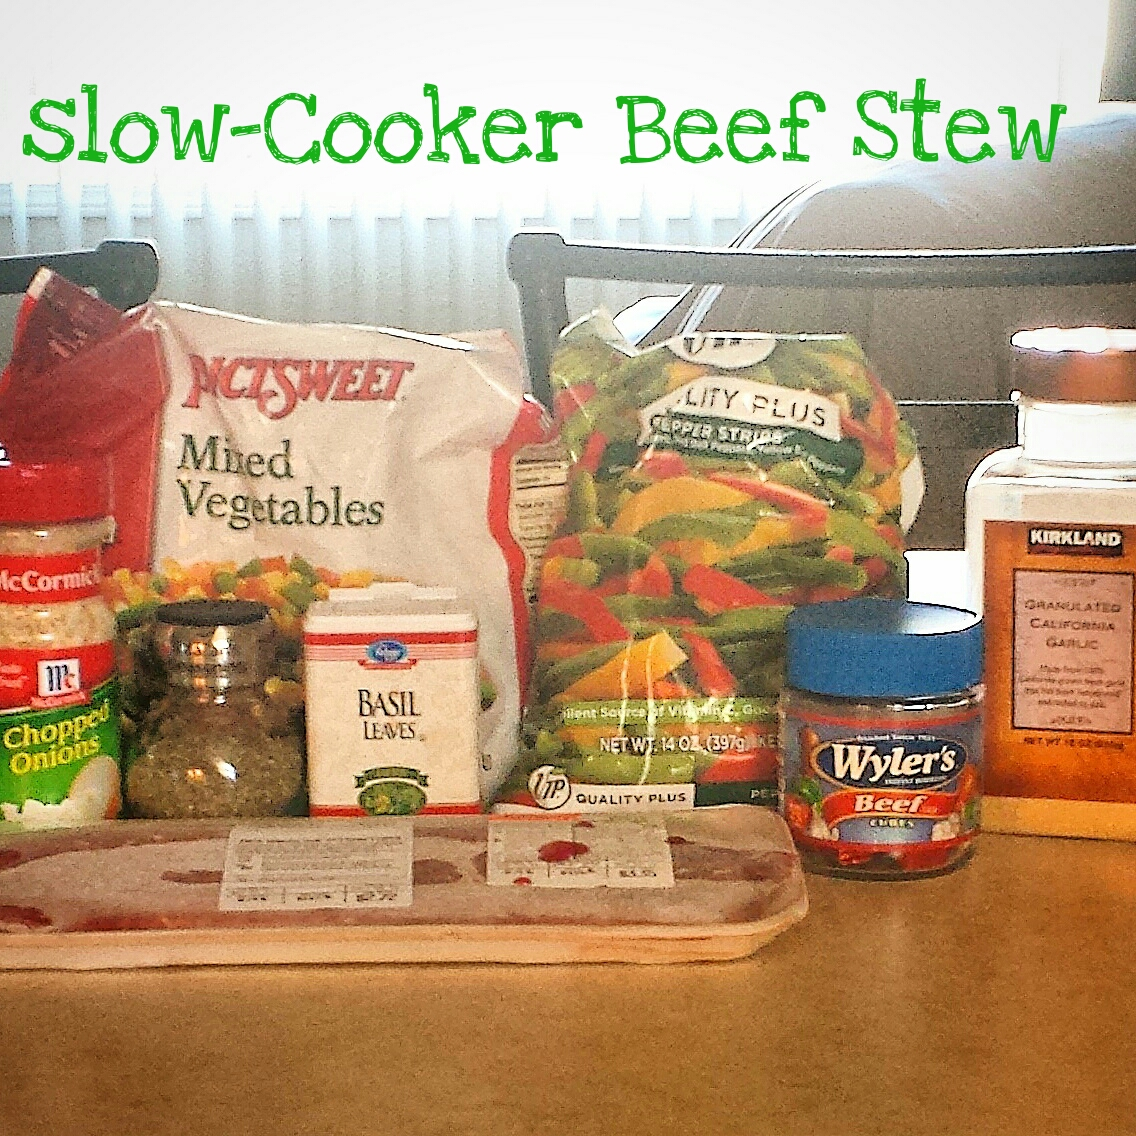 ... lb beef stew meat 4 beef bouillon cubes 1 2 cup pepper strips 1